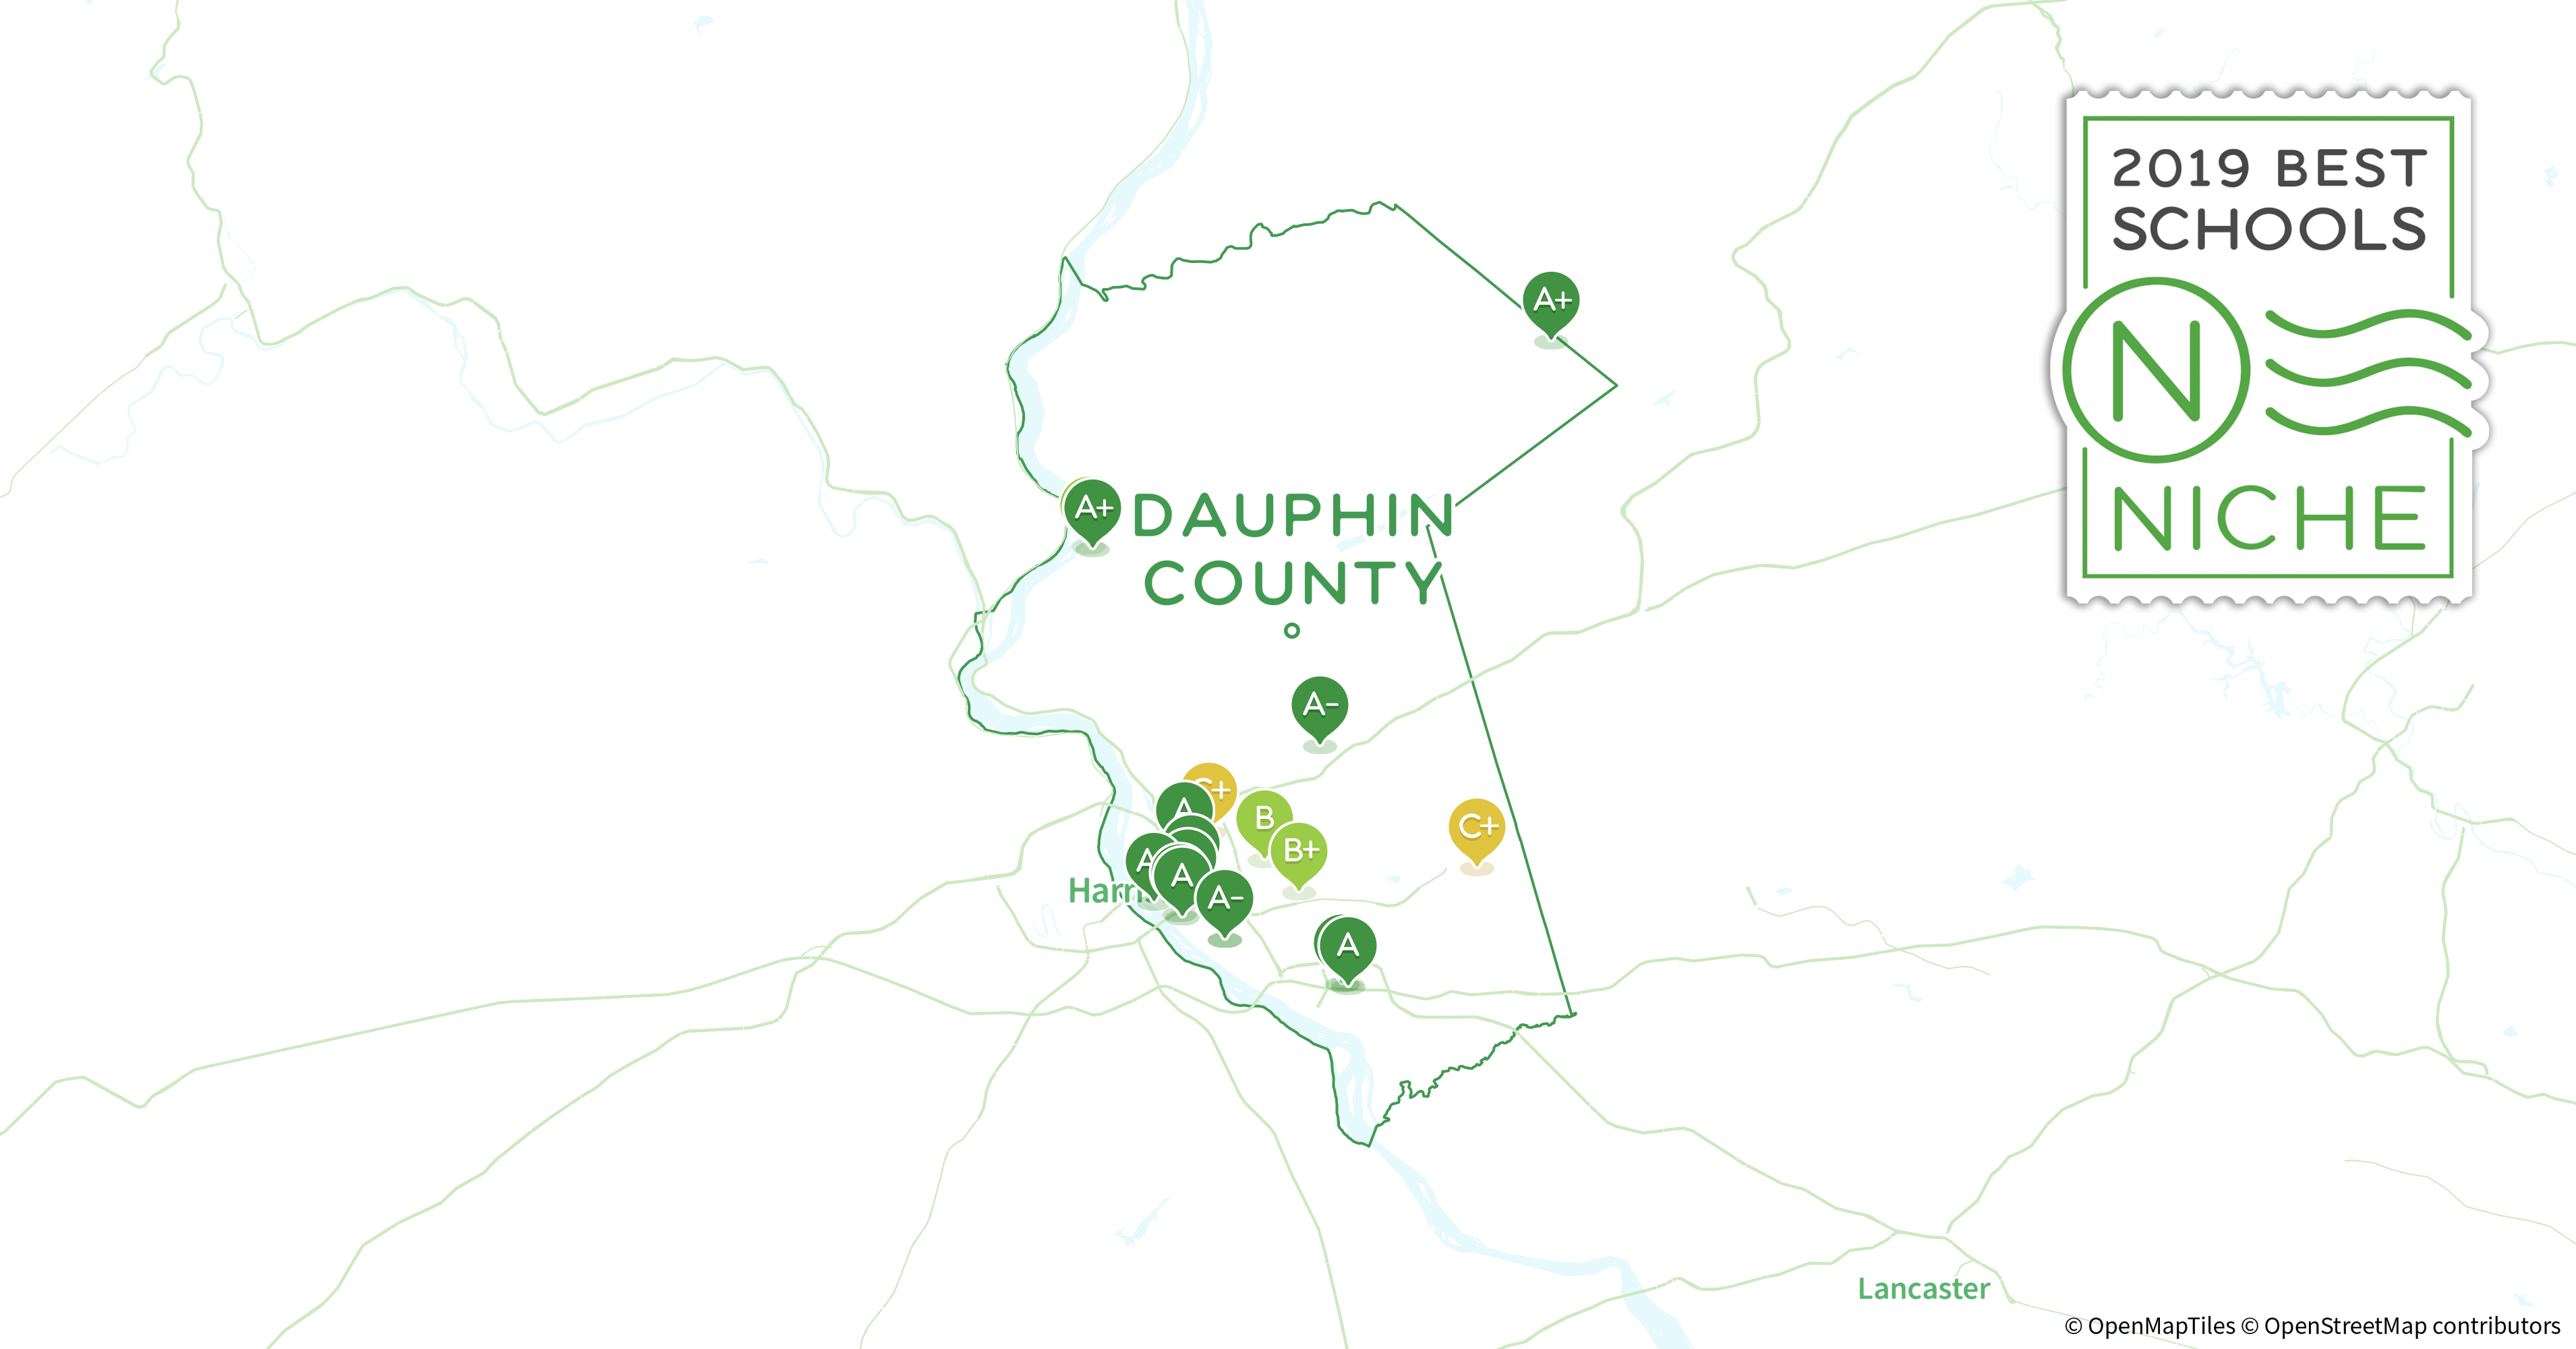 School Districts In Dauphin County Pa Niche